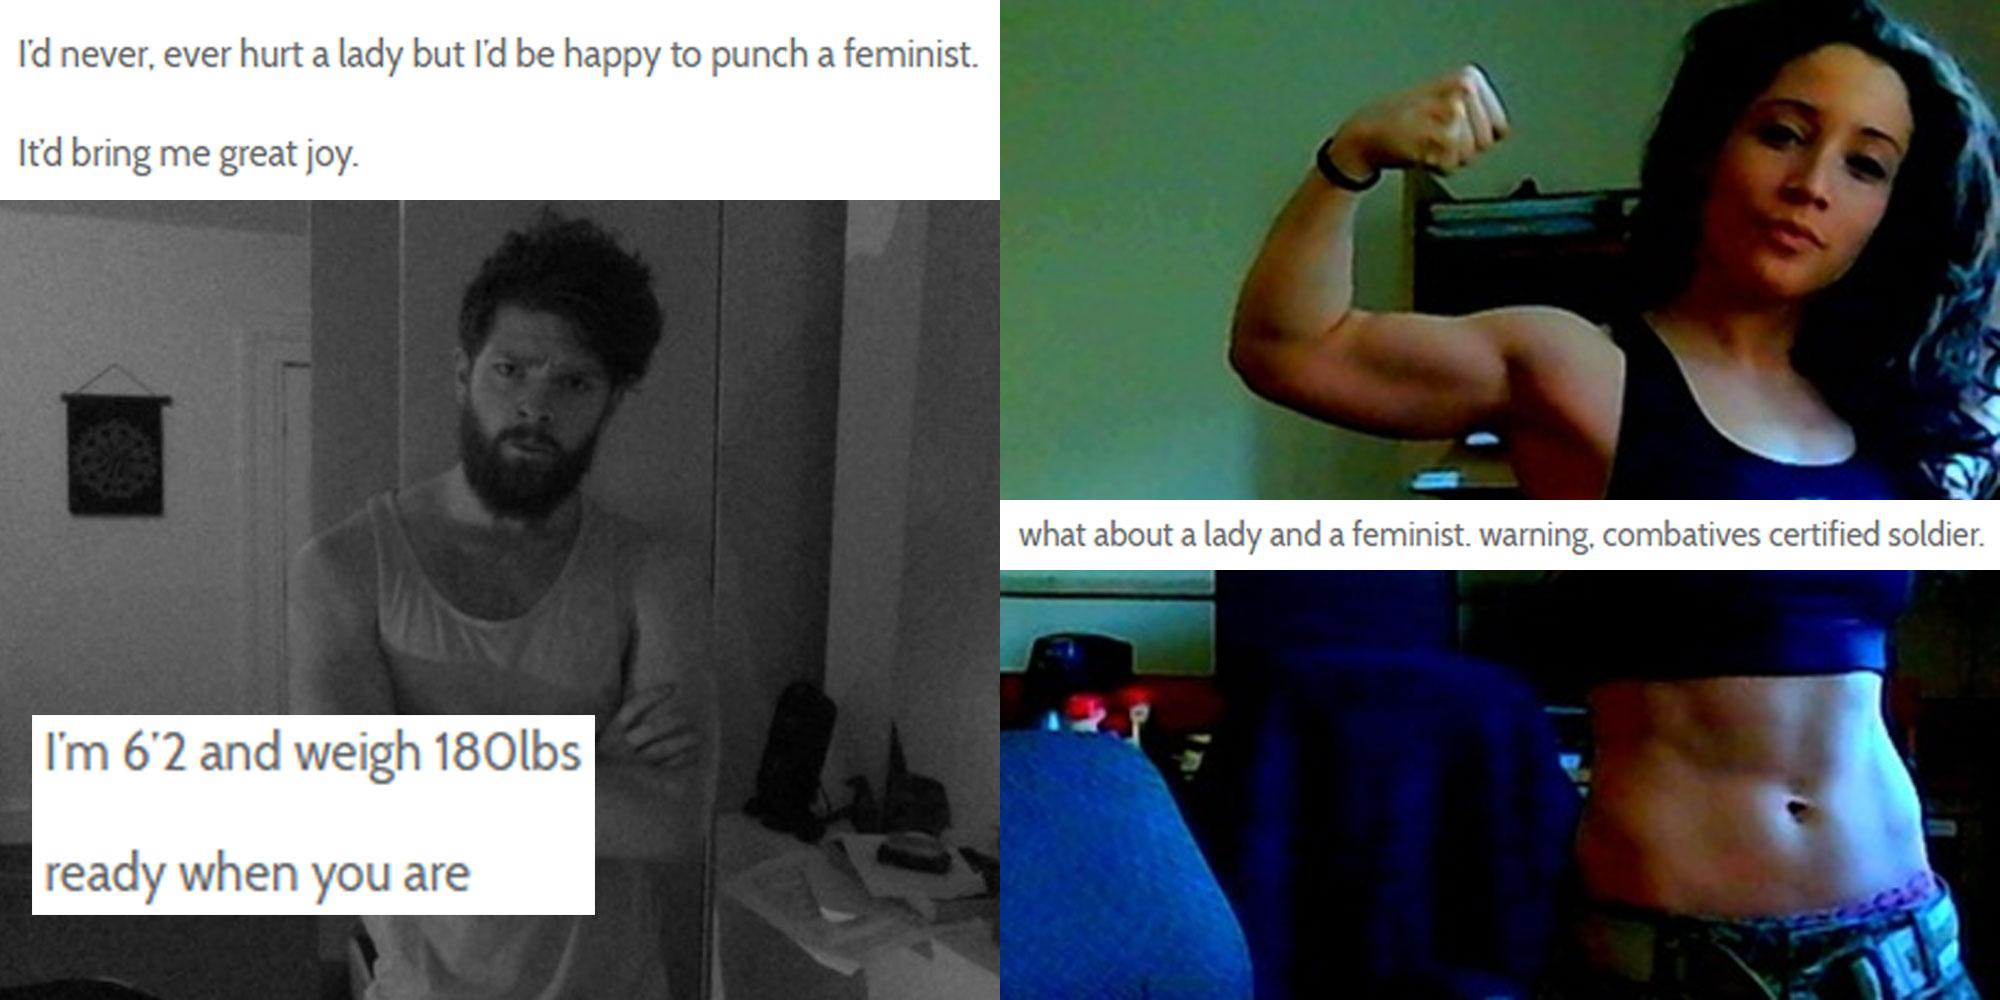 This man said he wanted to punch a feminist. It really, really backfired